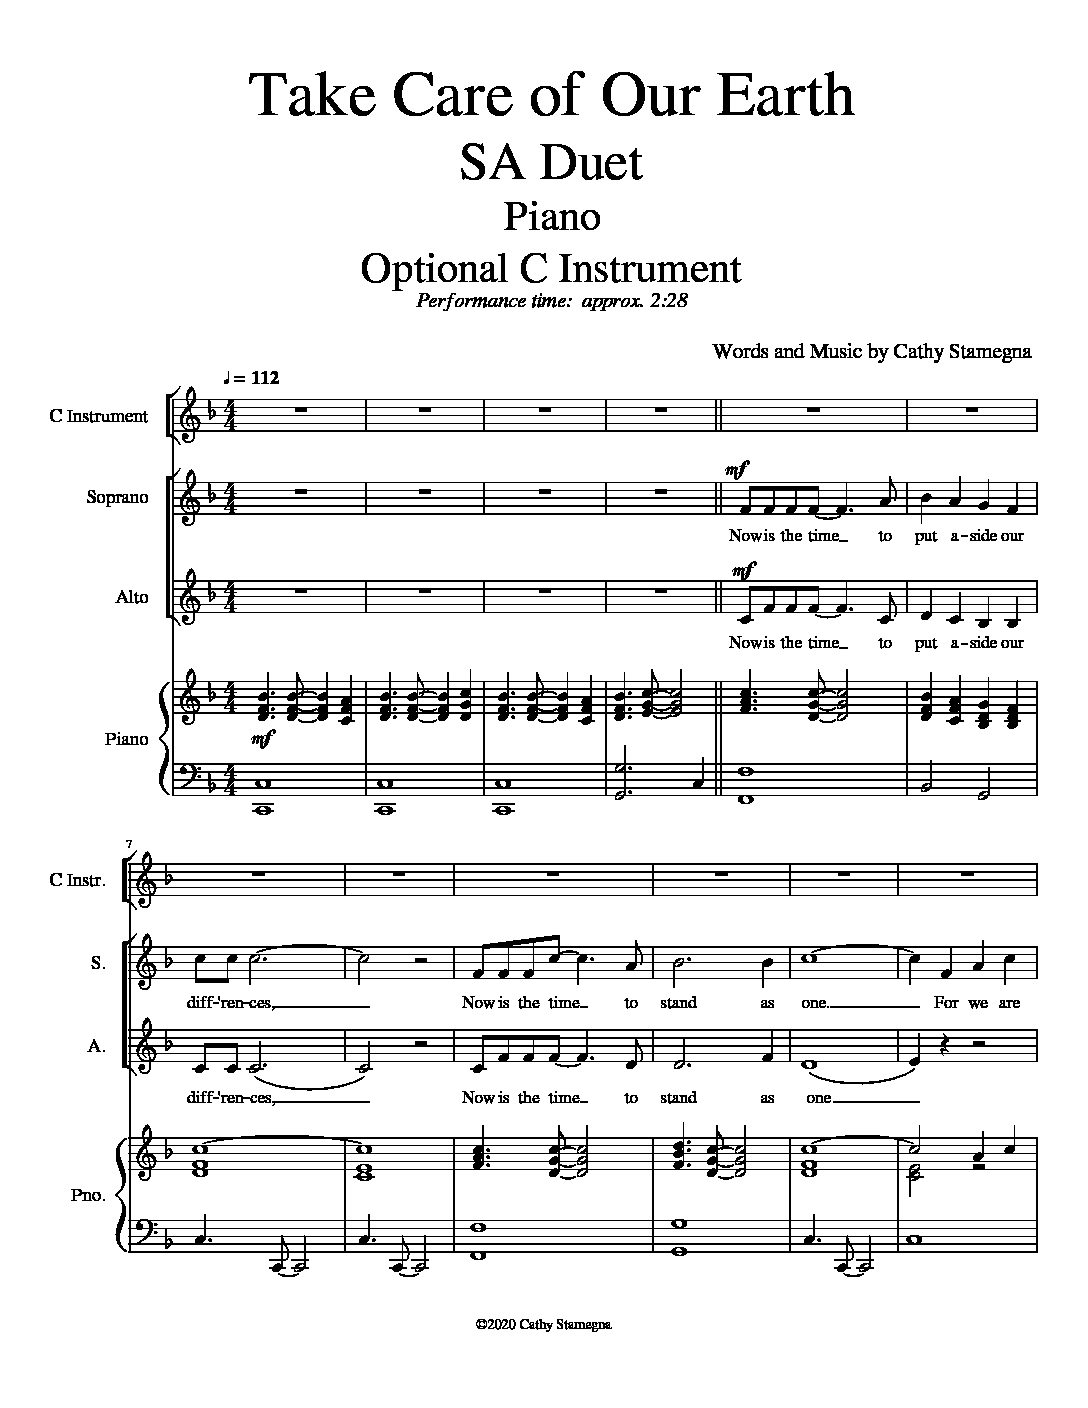 Take Care of Our Earth (Piano, Optional C Instrument) for Vocal Solo, SA, TB, ST Duet